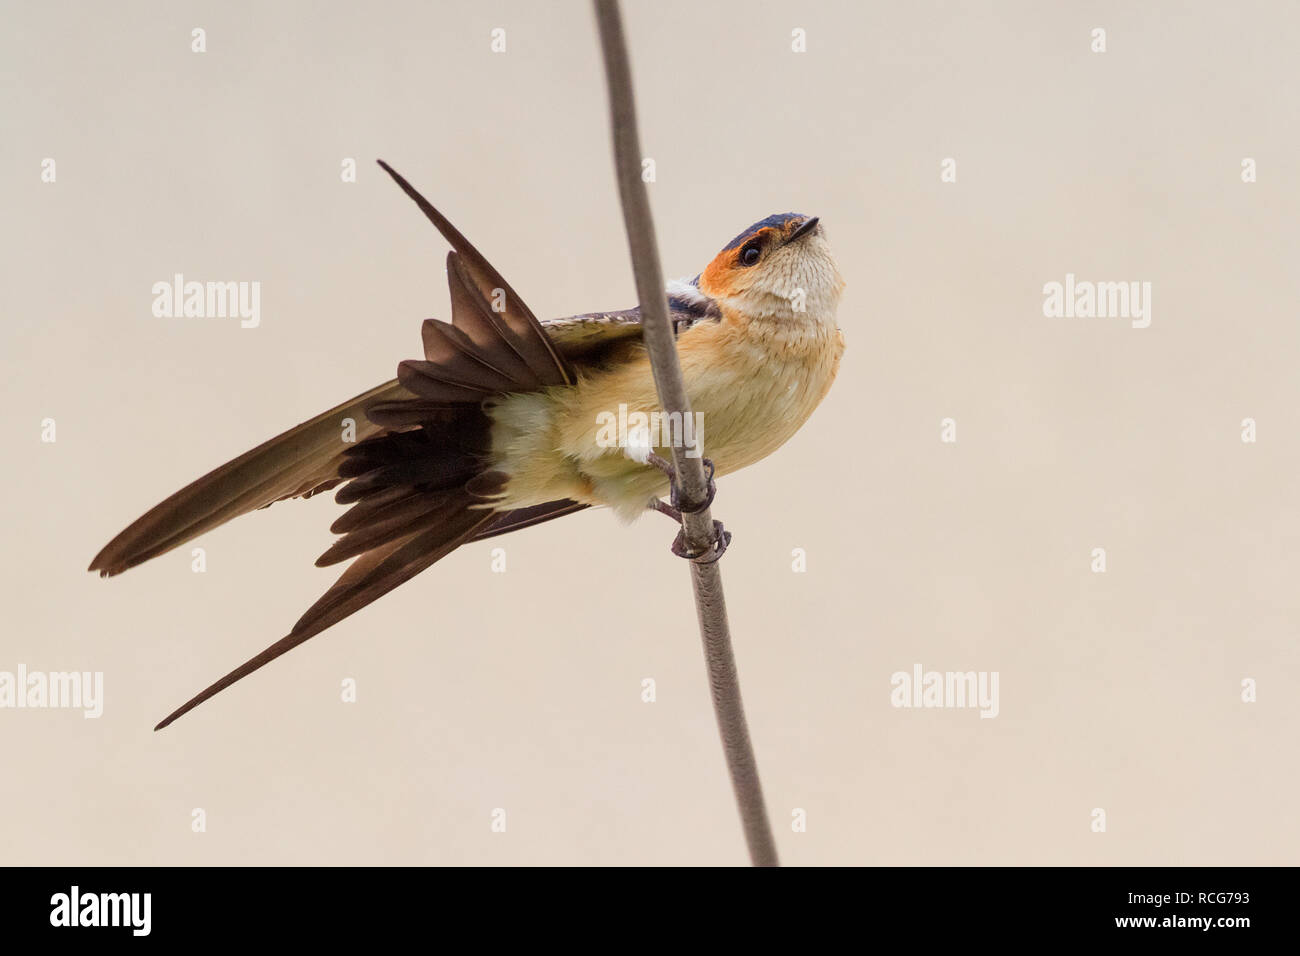 Red-rumped Swallow (Cecropis daurica), adult perched on a wire - Stock Image